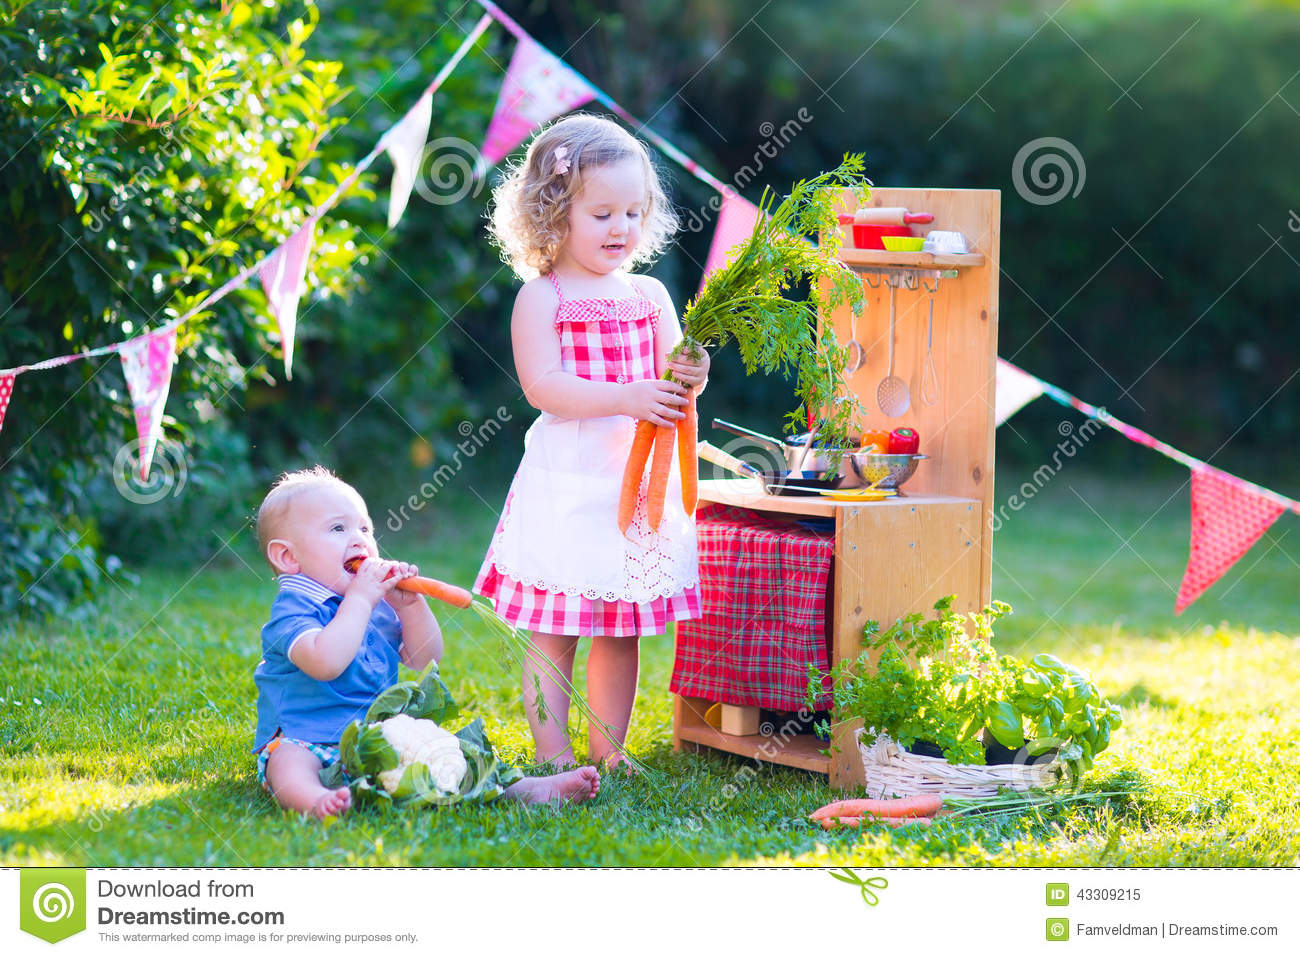 Cute Little Kids Playing With Toy Kitchen In The Garden